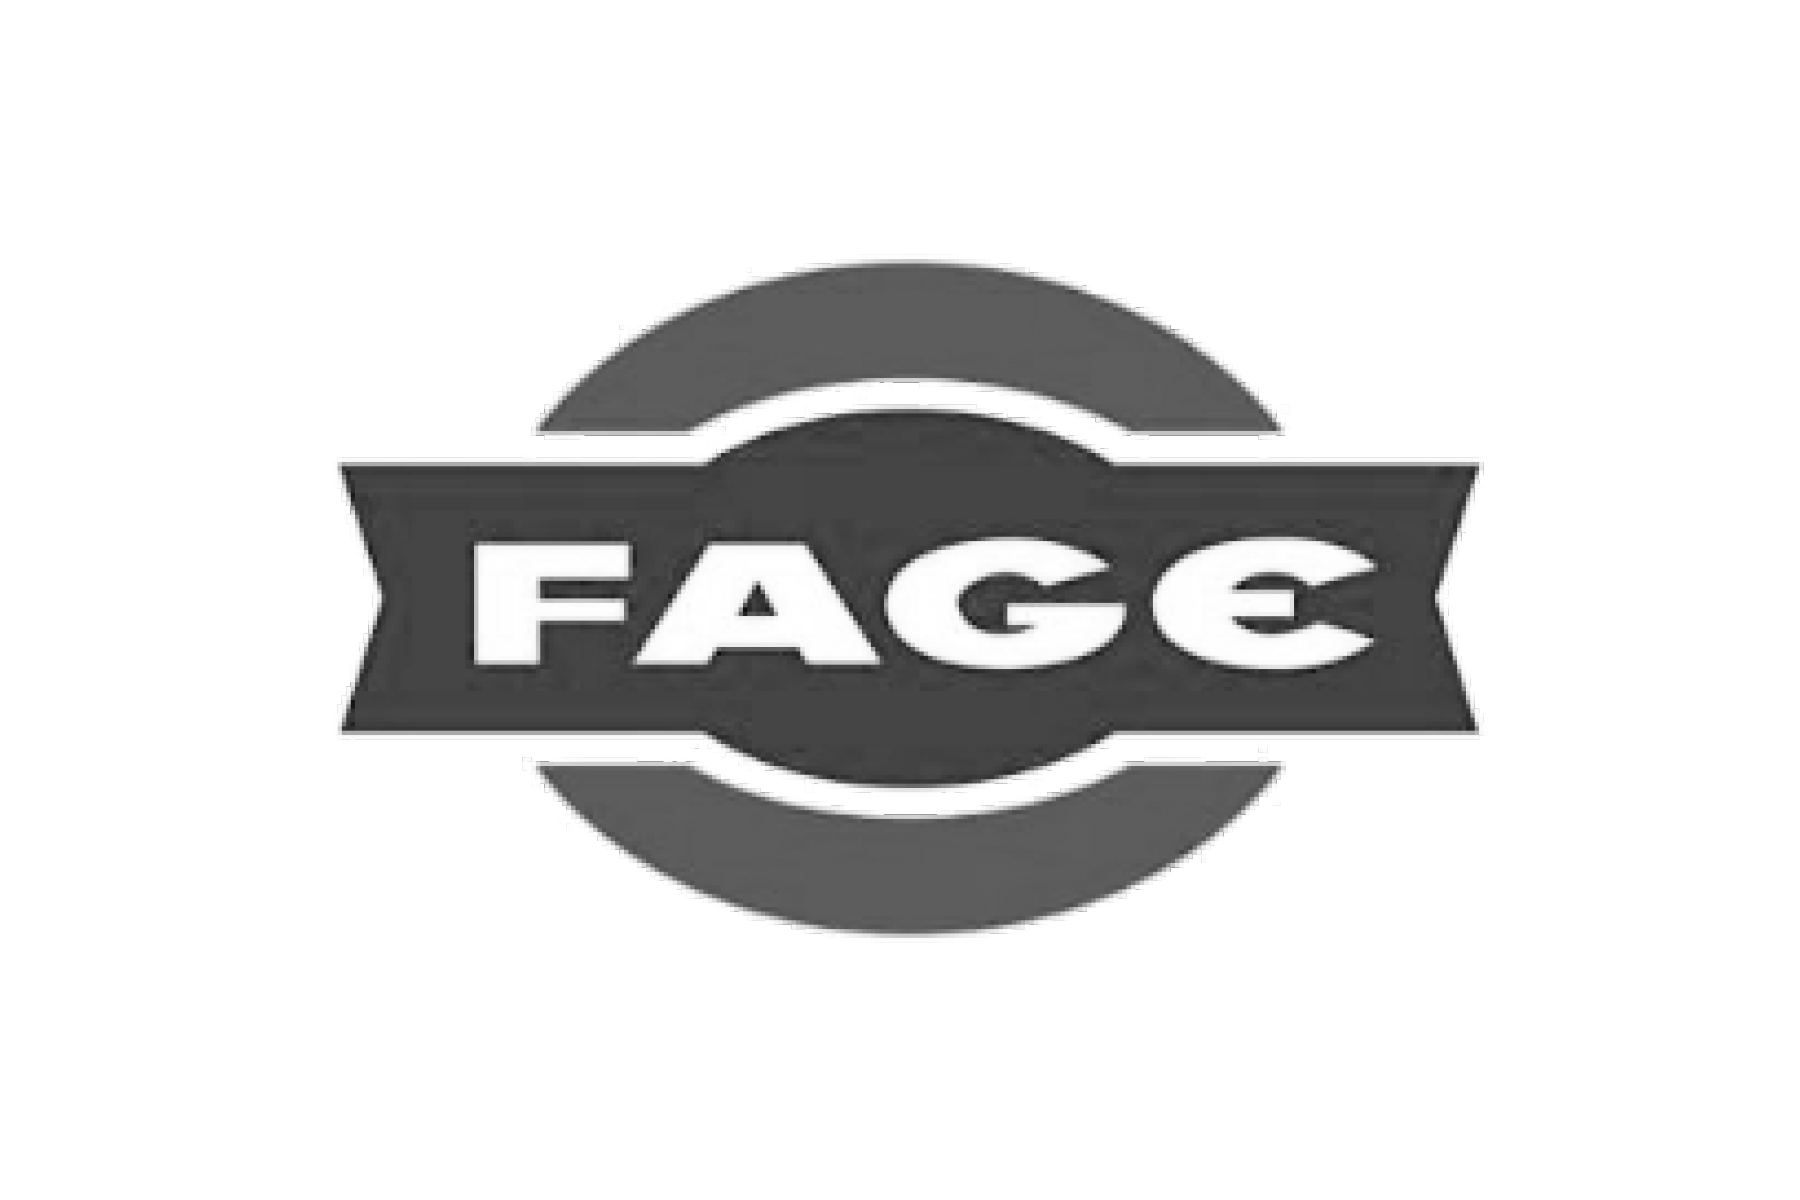 All_Logos_CR_Website_fage.png